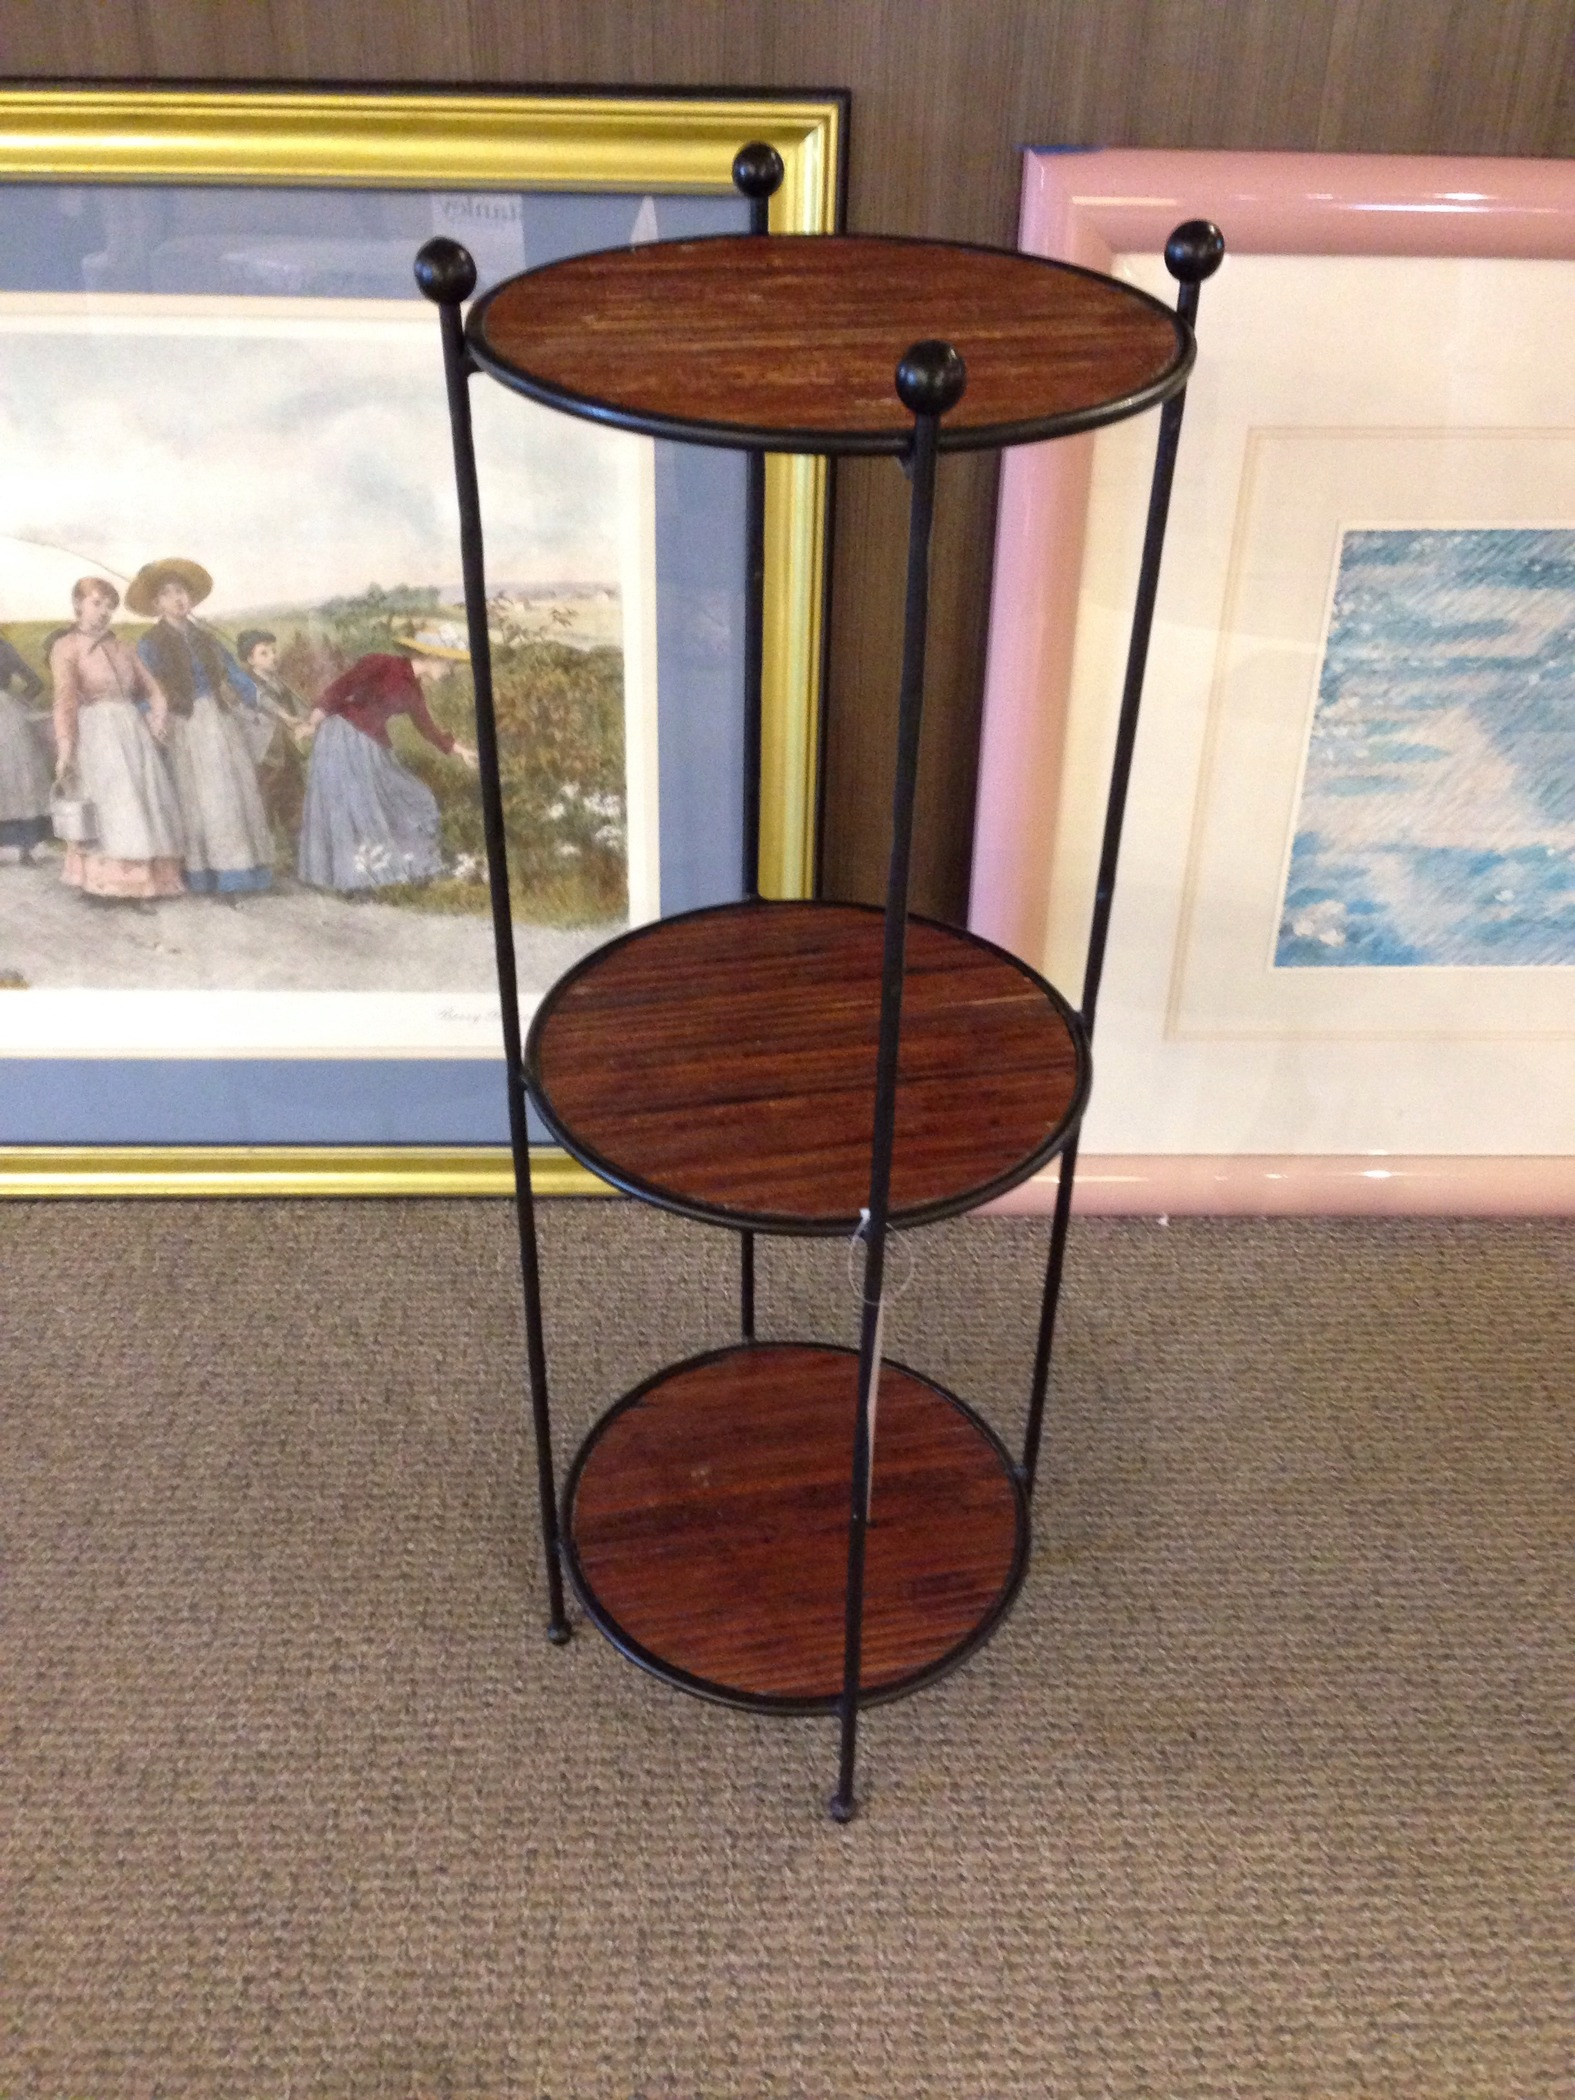 petite etagere allegheny furniture consignment. Black Bedroom Furniture Sets. Home Design Ideas